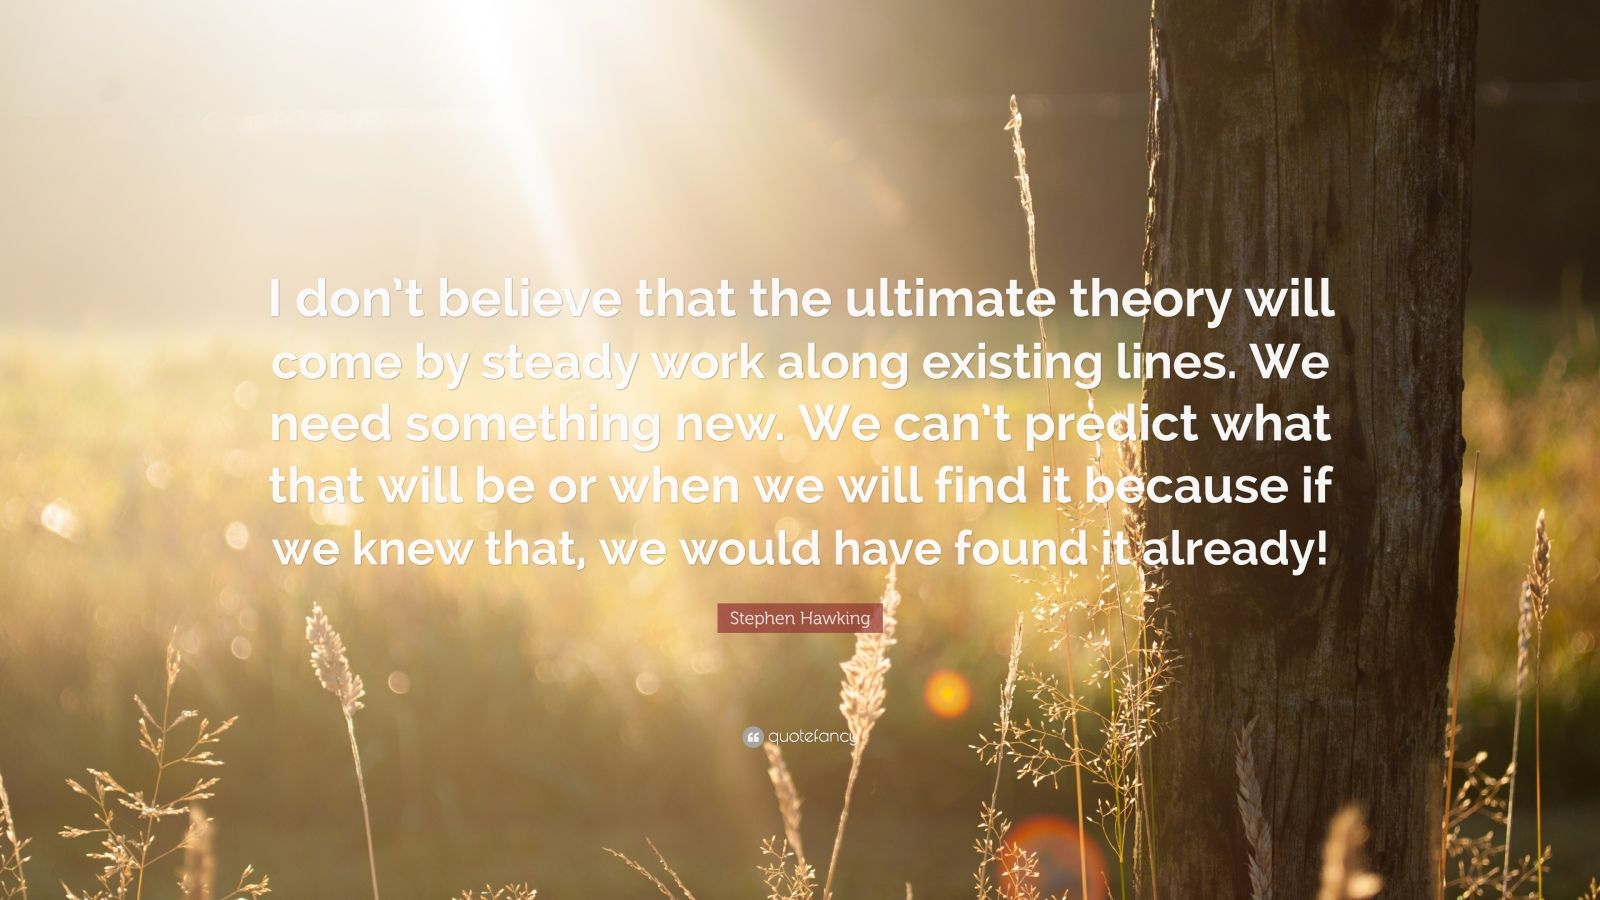 "Stephen Hawking Quote: ""I don't believe that the ultimate theory will come by steady work along existing lines. We need something new. We can't predict what that will be or when we will find it because if we knew that, we would have found it already!"""